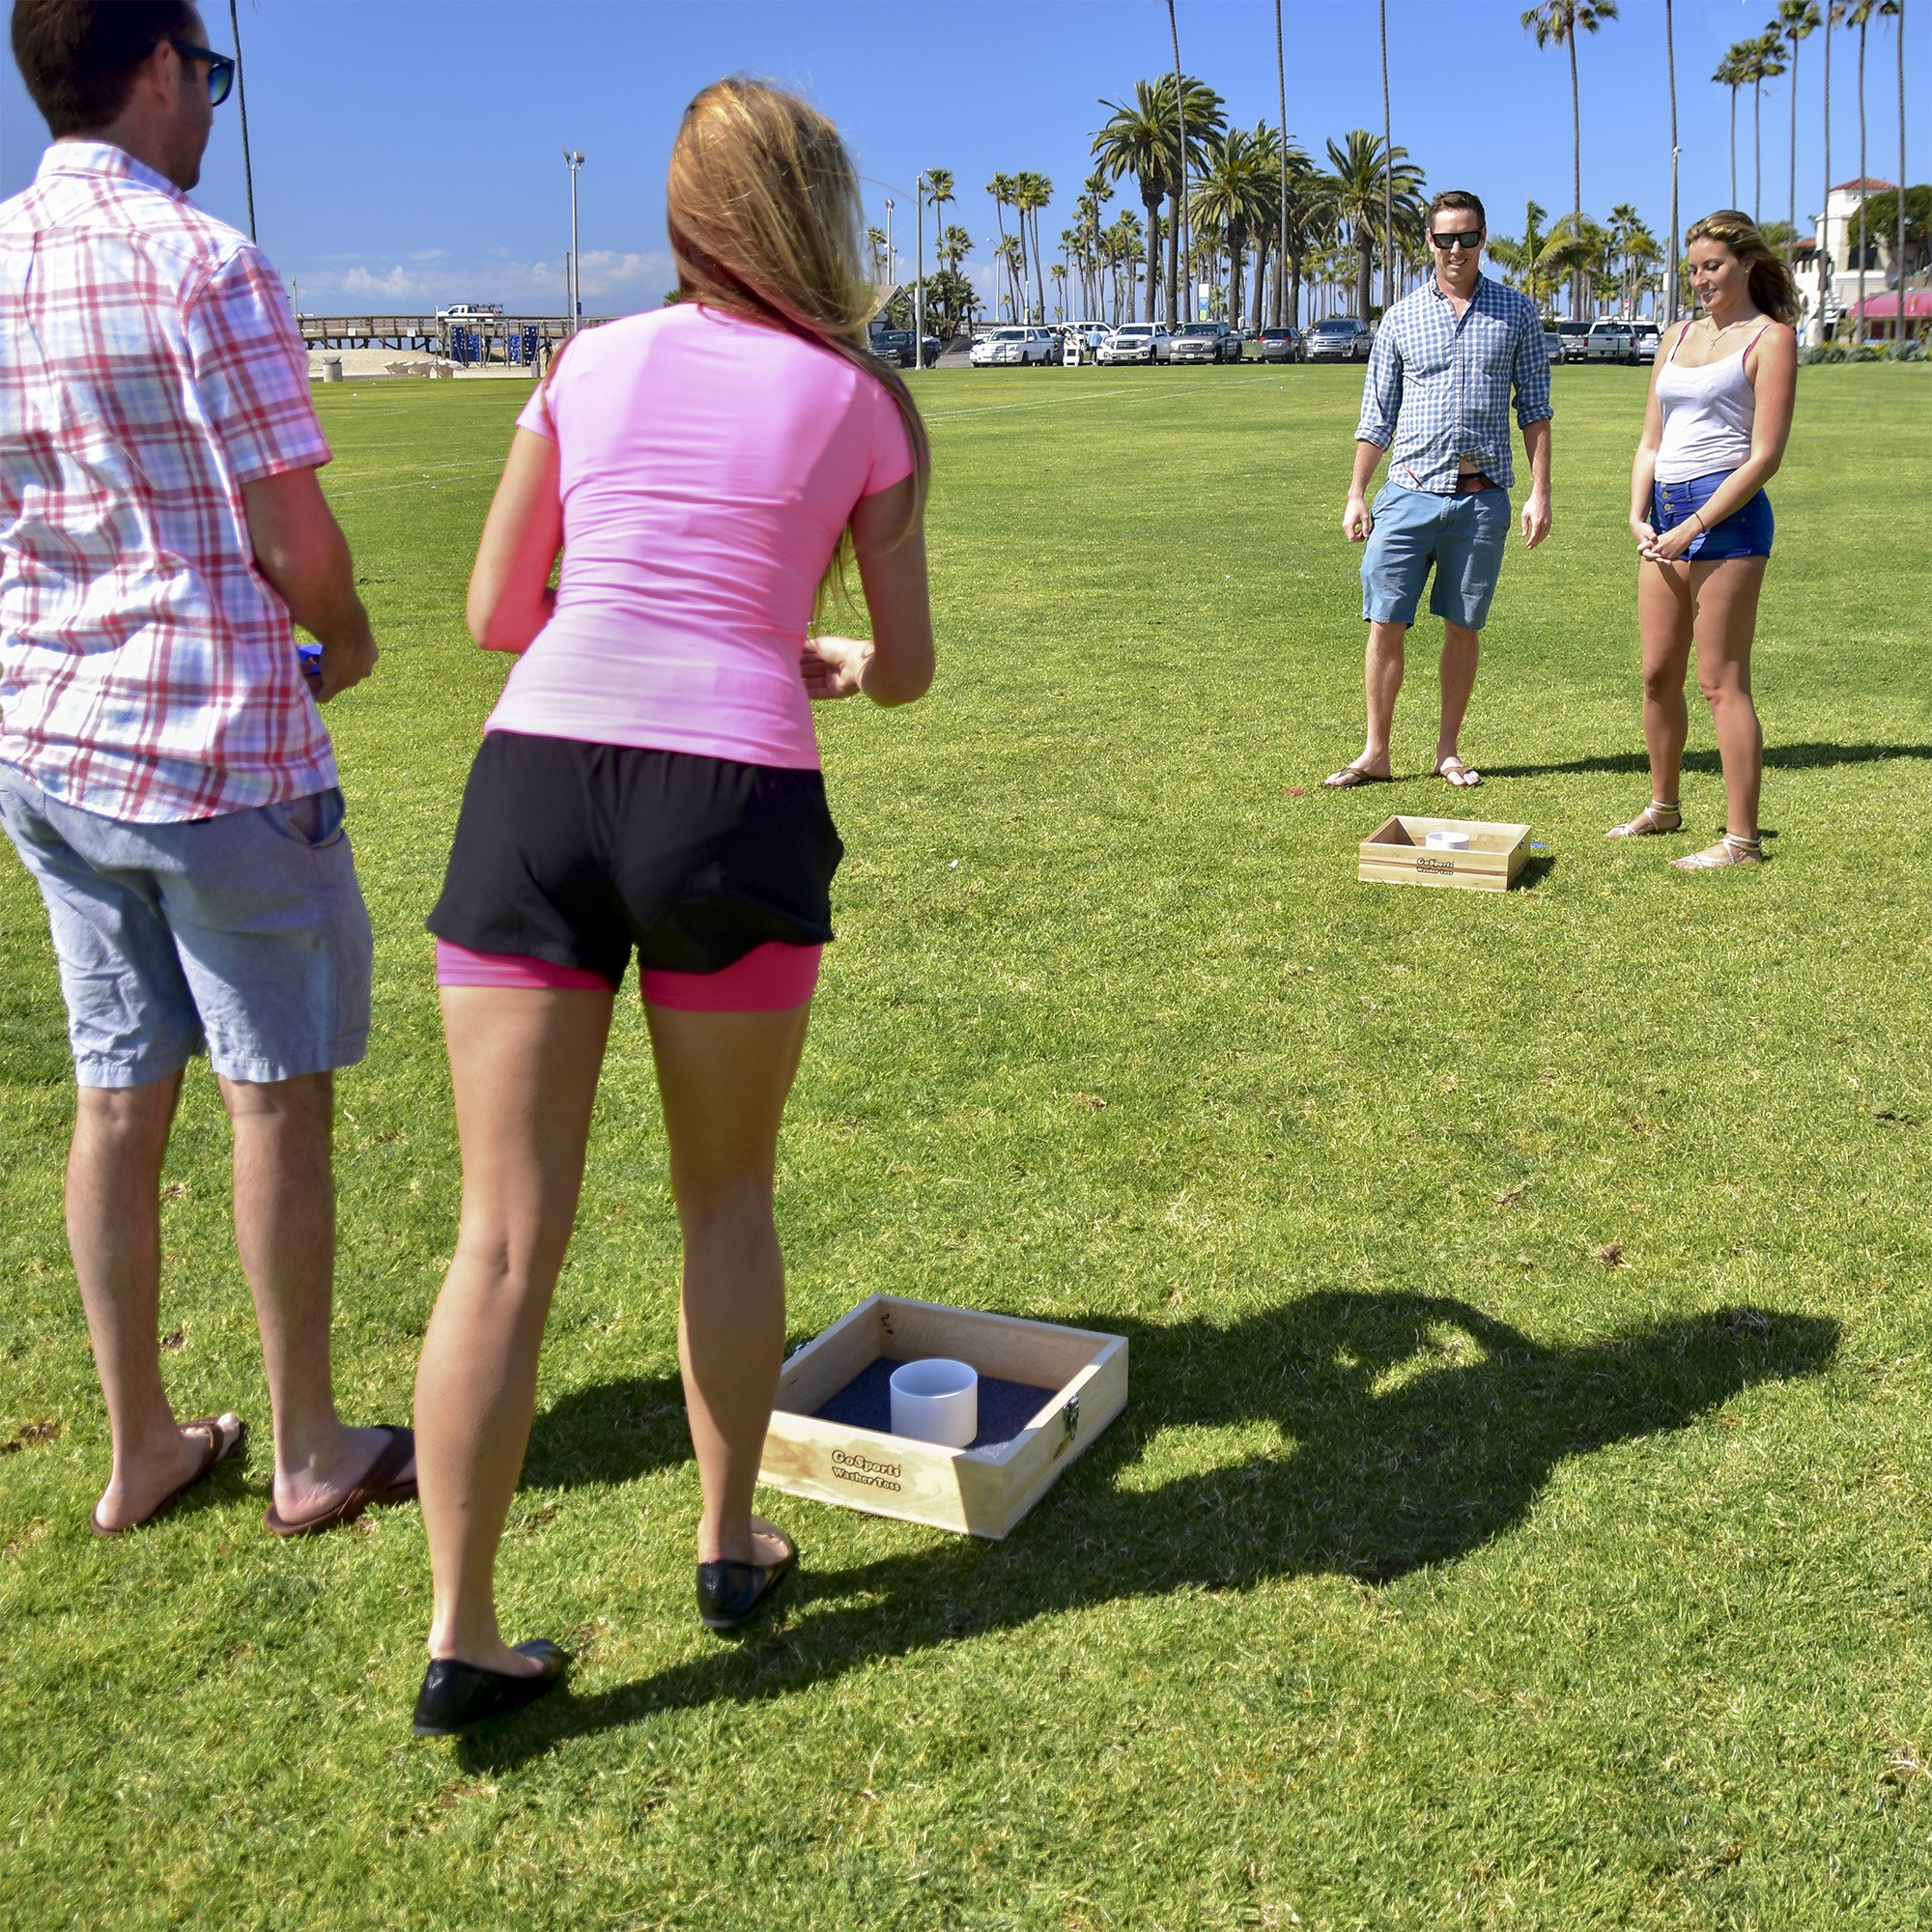 People Playing Washer toss in Washers Lawn Game Rules